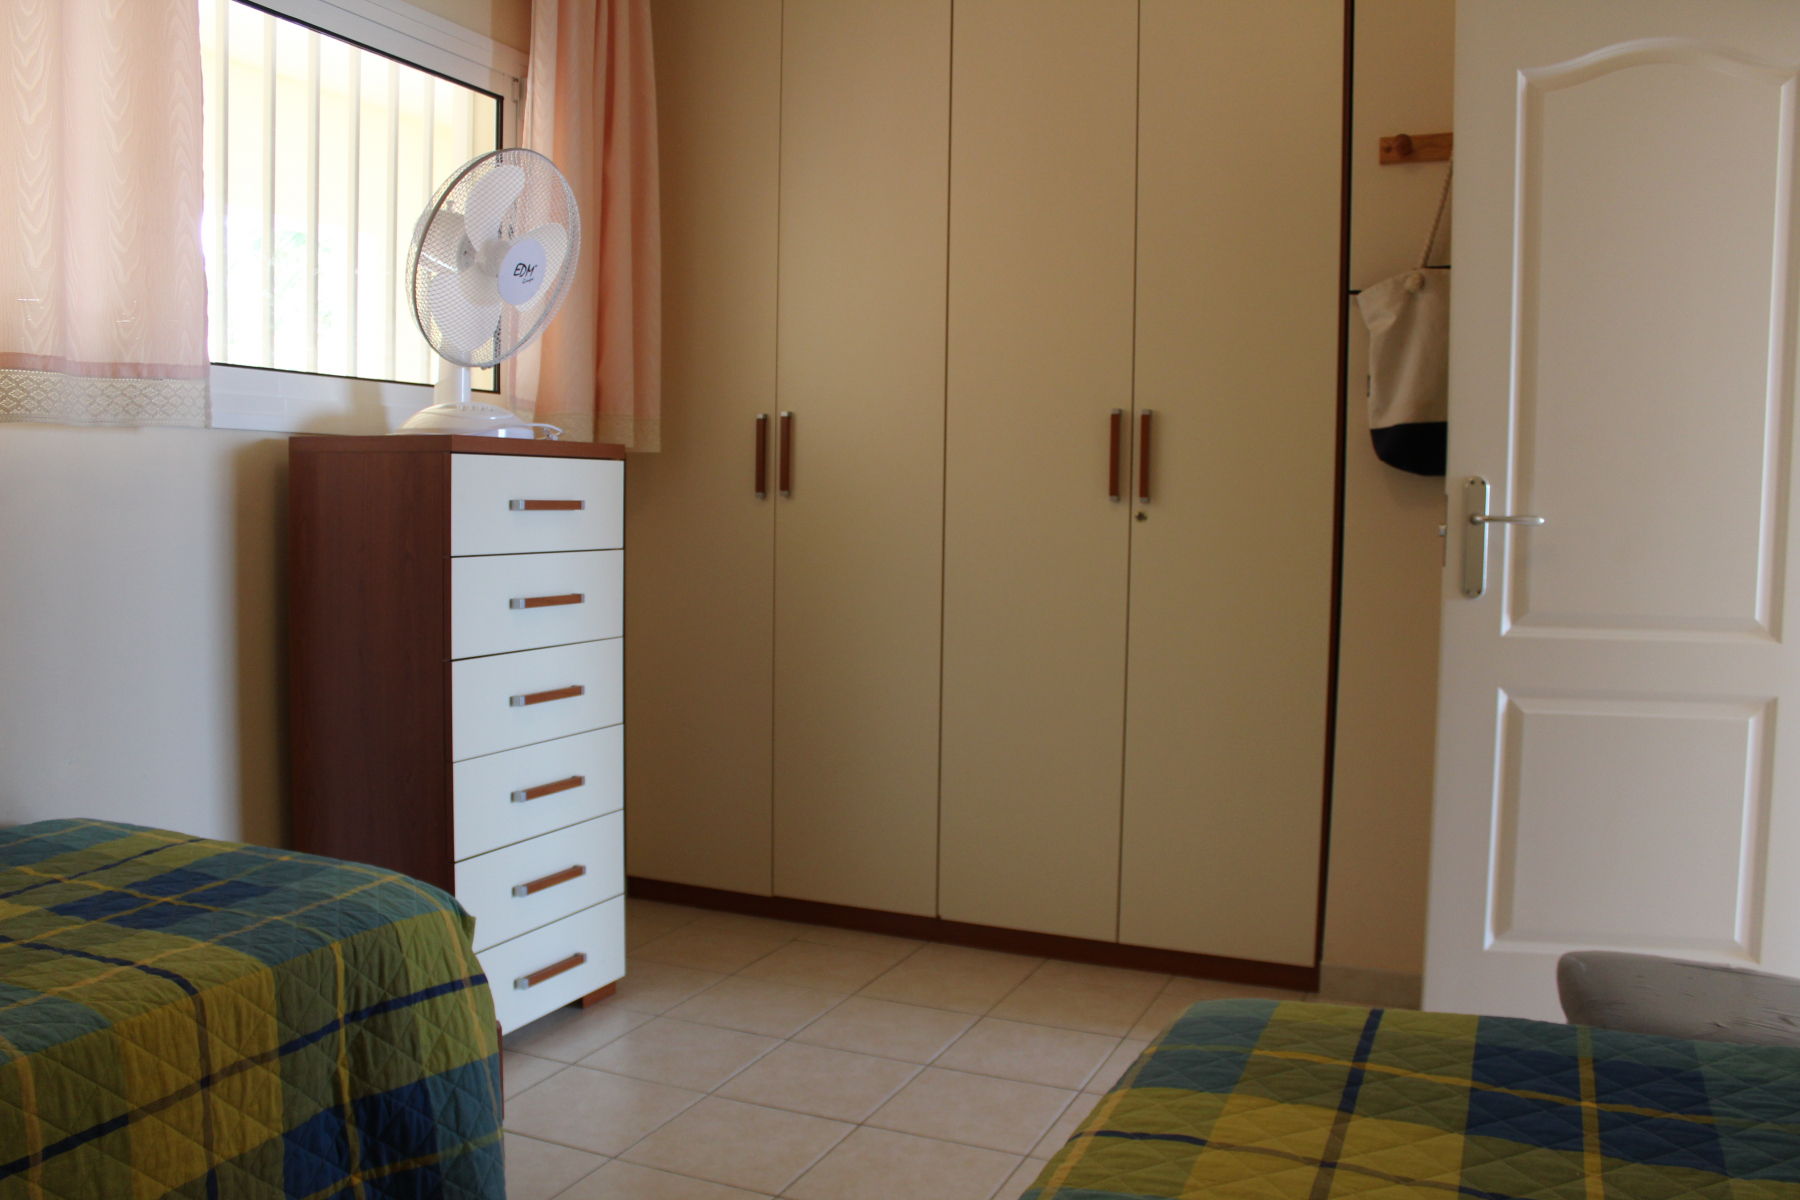 Properties for Sale in Tenerife, Canary Islands, Spain | SylkWayStar Real Estate. Apartment with 2 bedrooms in Callao Salvaje. Image-25721